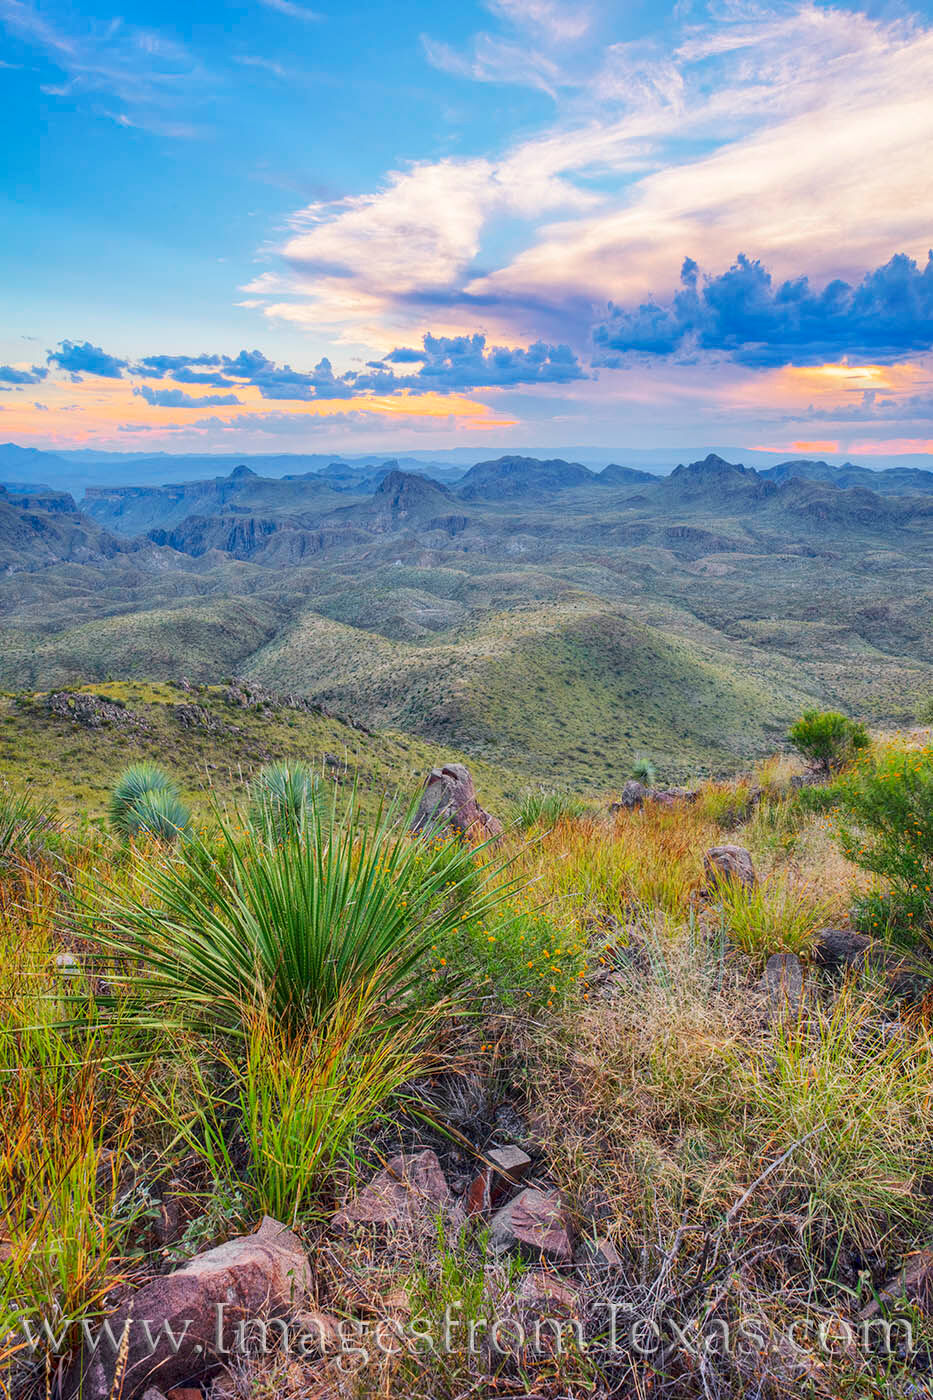 oso peak, oso mountain, big bend ranch state park, big bend ranch, hiking, sunset, evening, exploring, west texas, photo